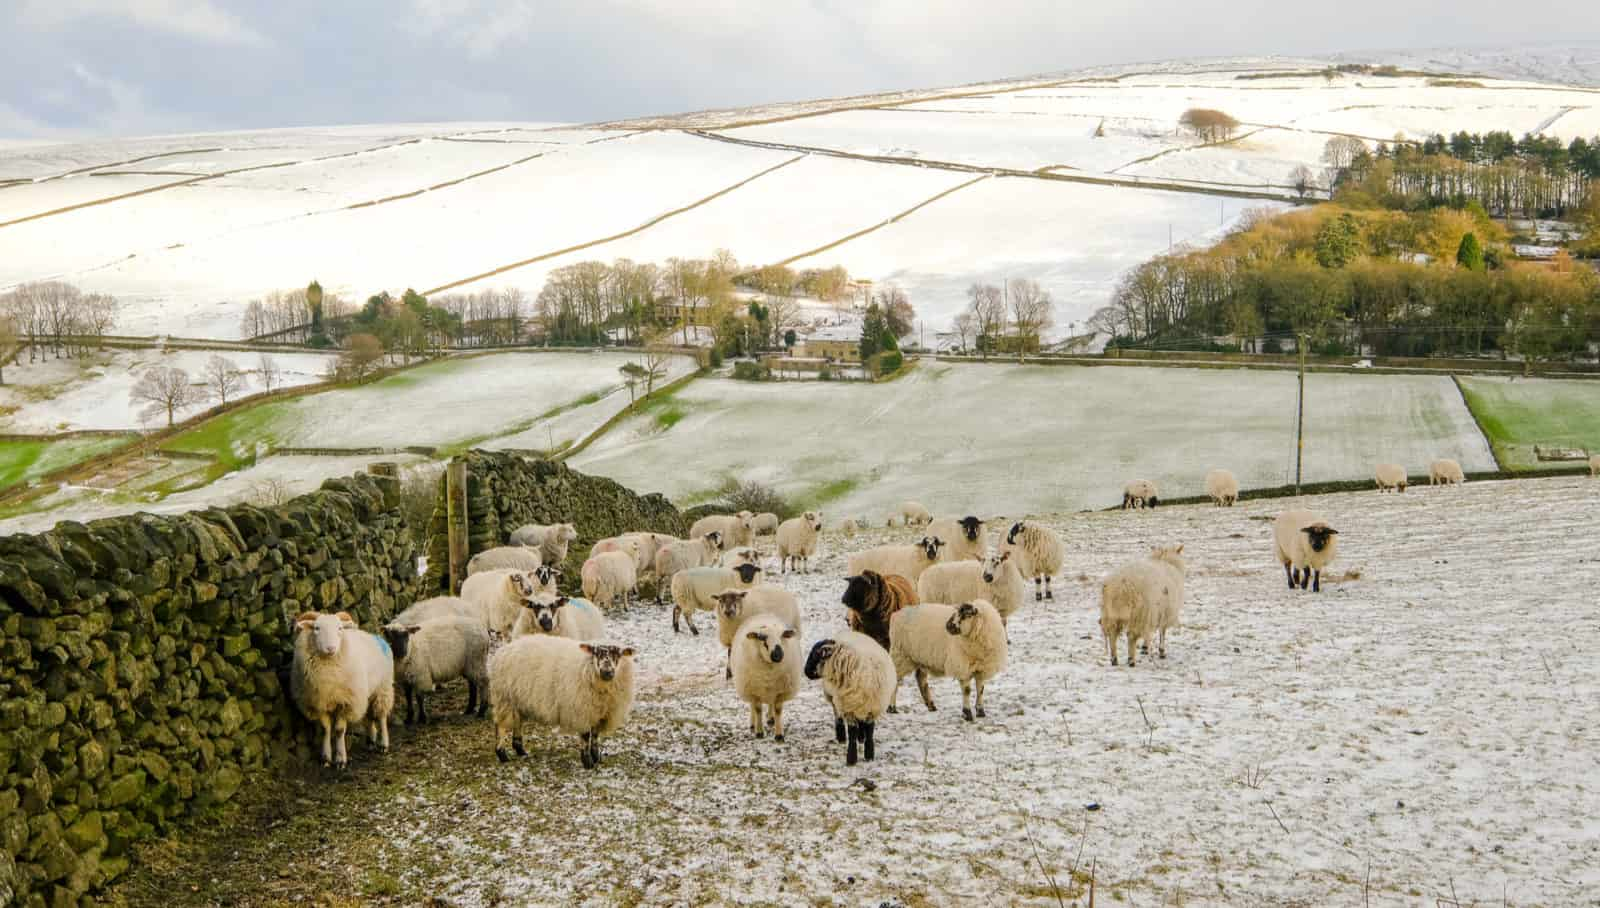 A flock of sheep in Glossop, UK